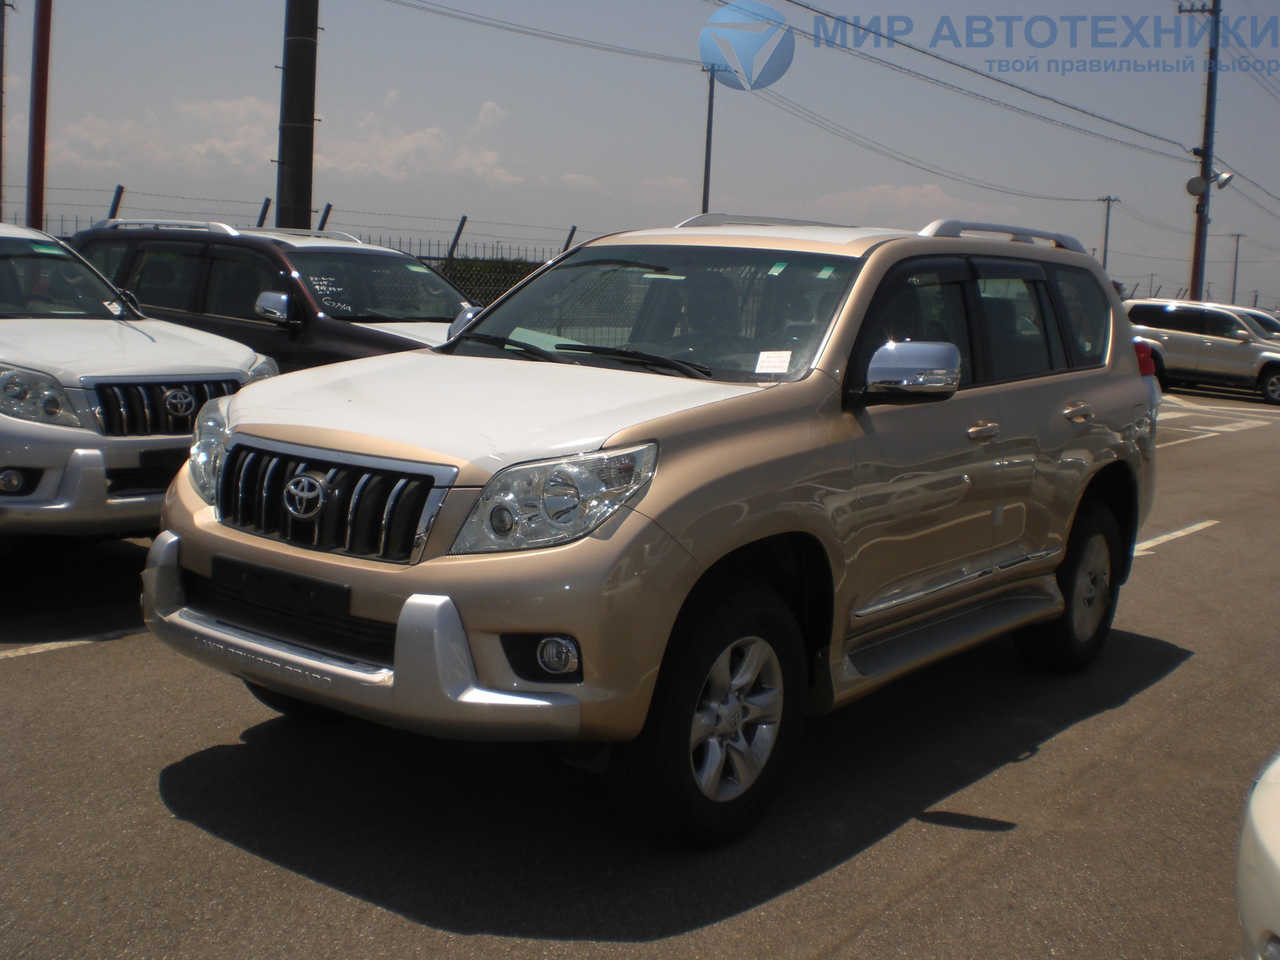 Toyota Land Cruiser Prado 2.7 2010 photo - 8